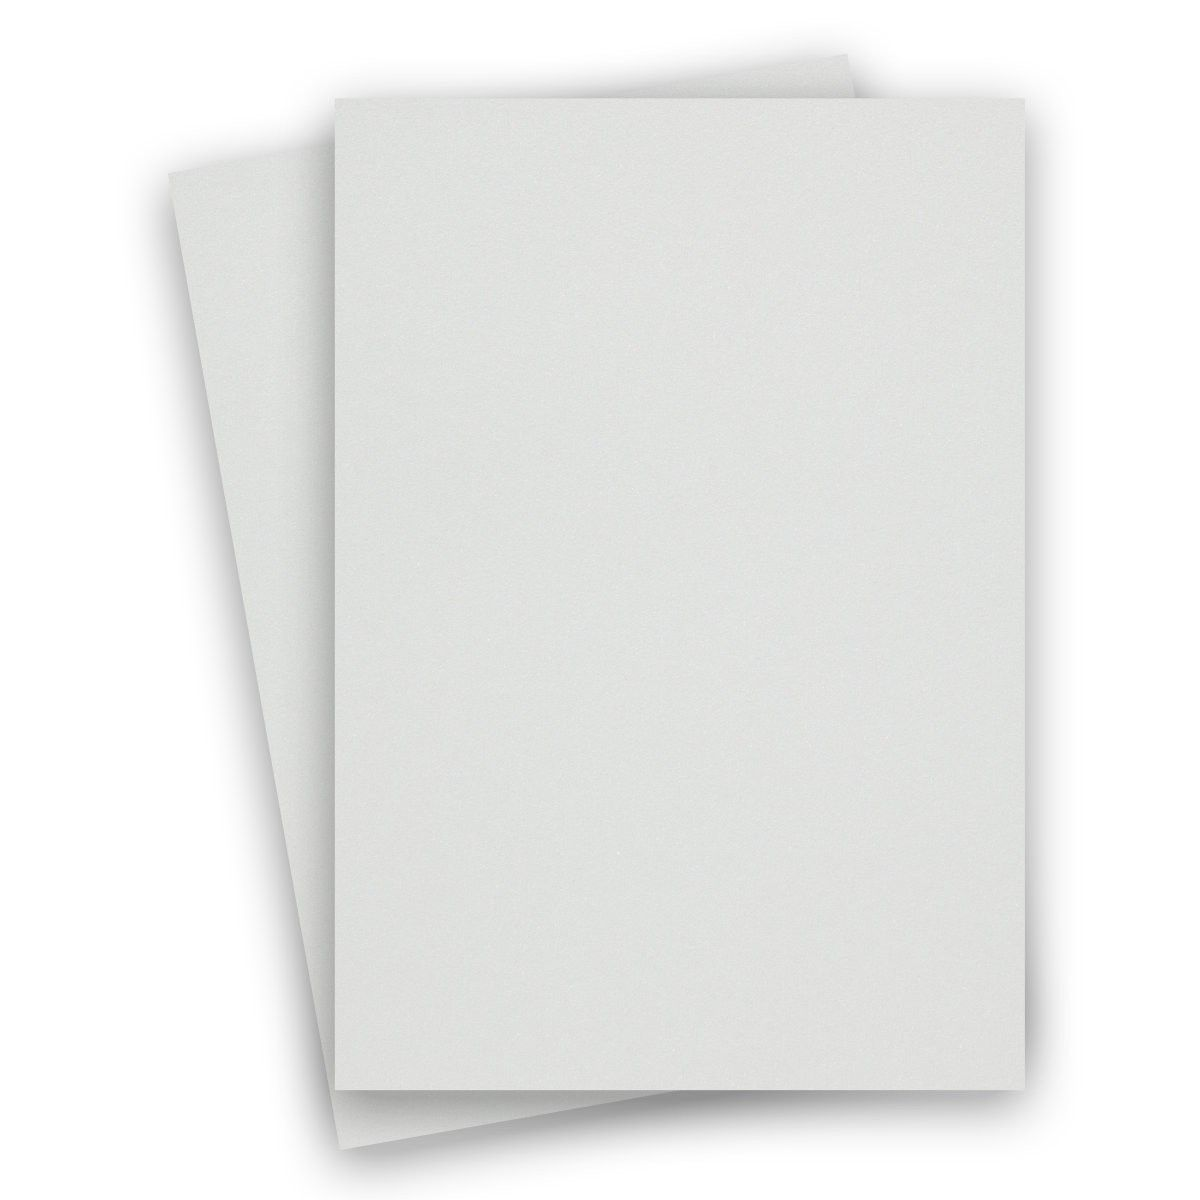 Curious Metallic White Silver 8 1 2 X 14 Legal Size Cardstock Paper 300 Gsm 111lb Cover 150 Pk Legal Size Paper Cardstock Paper White Silver